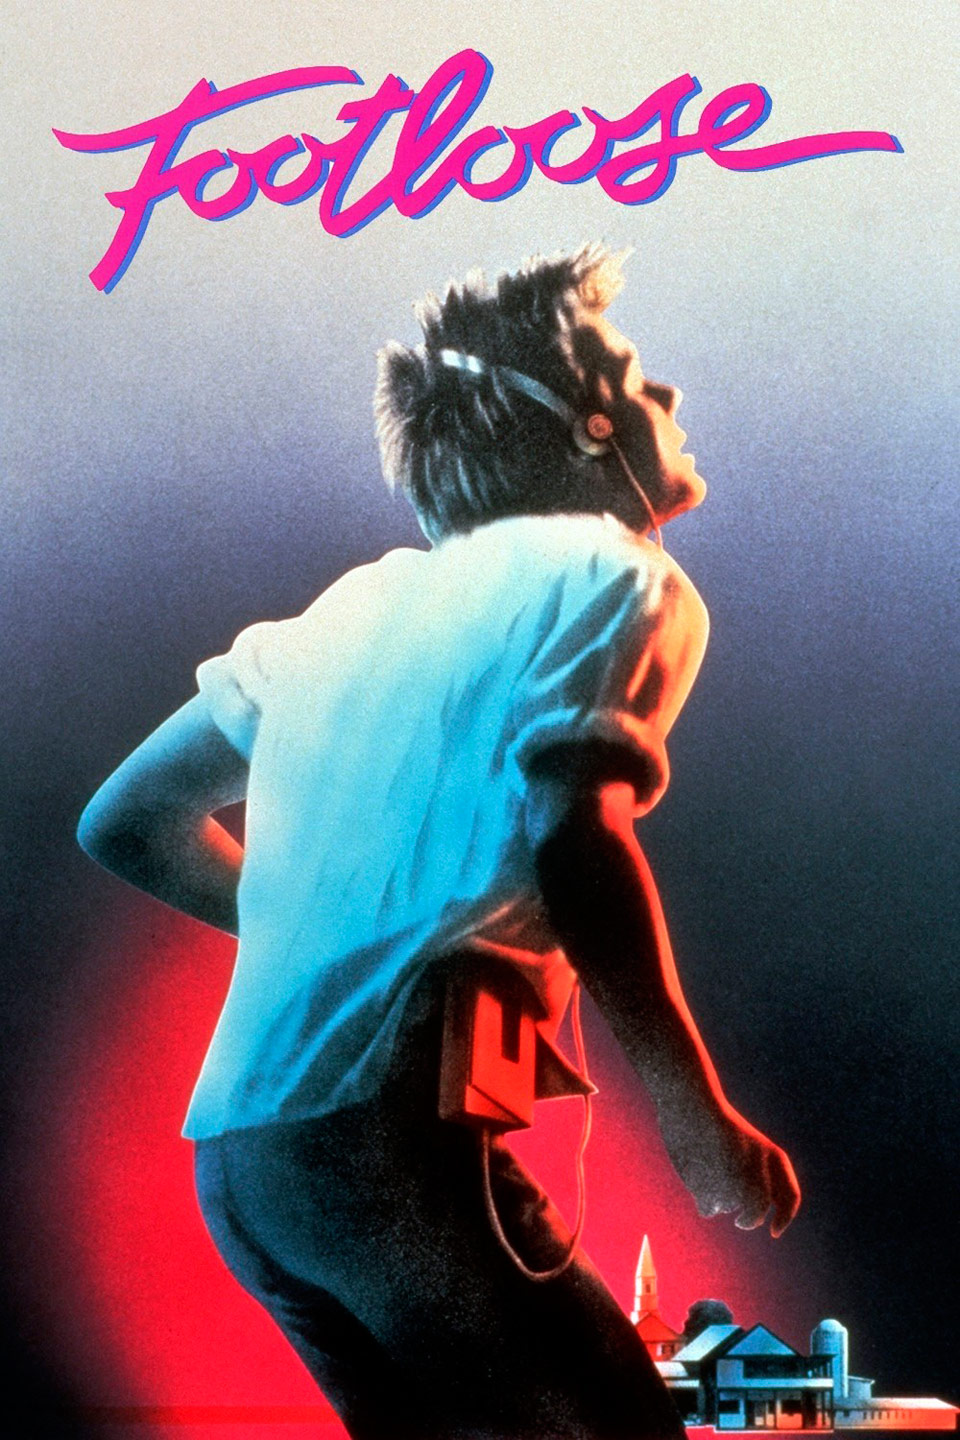 Mobile De Allemagne Affiche Du Film Footloose - Affiche 2 Sur 2 - Allociné